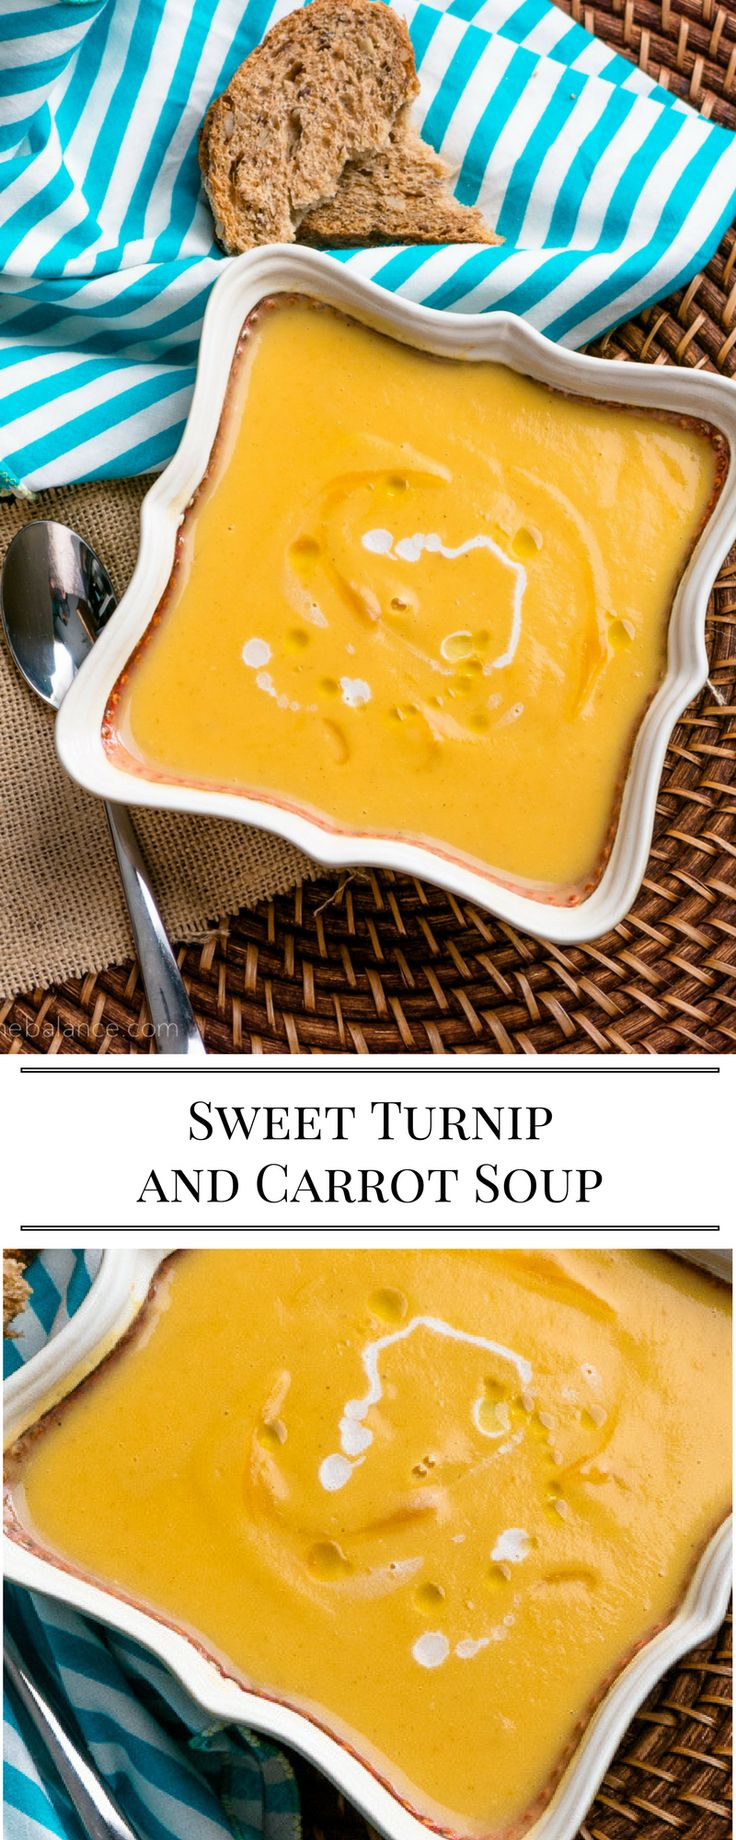 Sweet Turnip and Carrot Soup. This is a rich, vegan recipe. Perfect for winter. The soup gets it's richness from coconut milk!